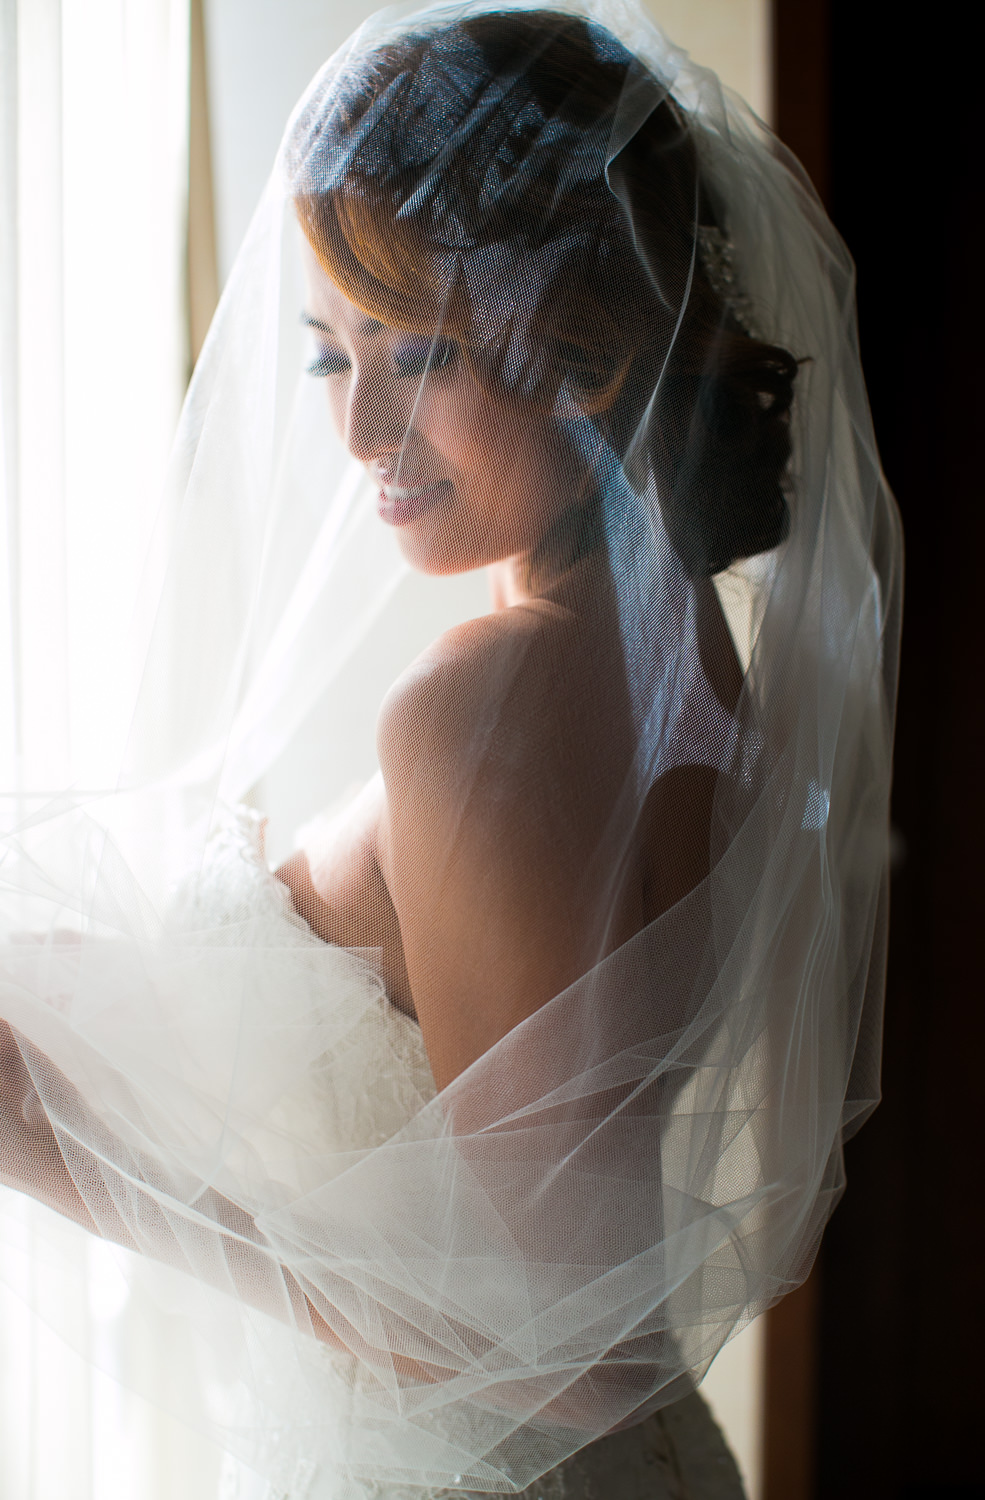 Hyatt Regency Maui Wedding - Bride looking gorgeous